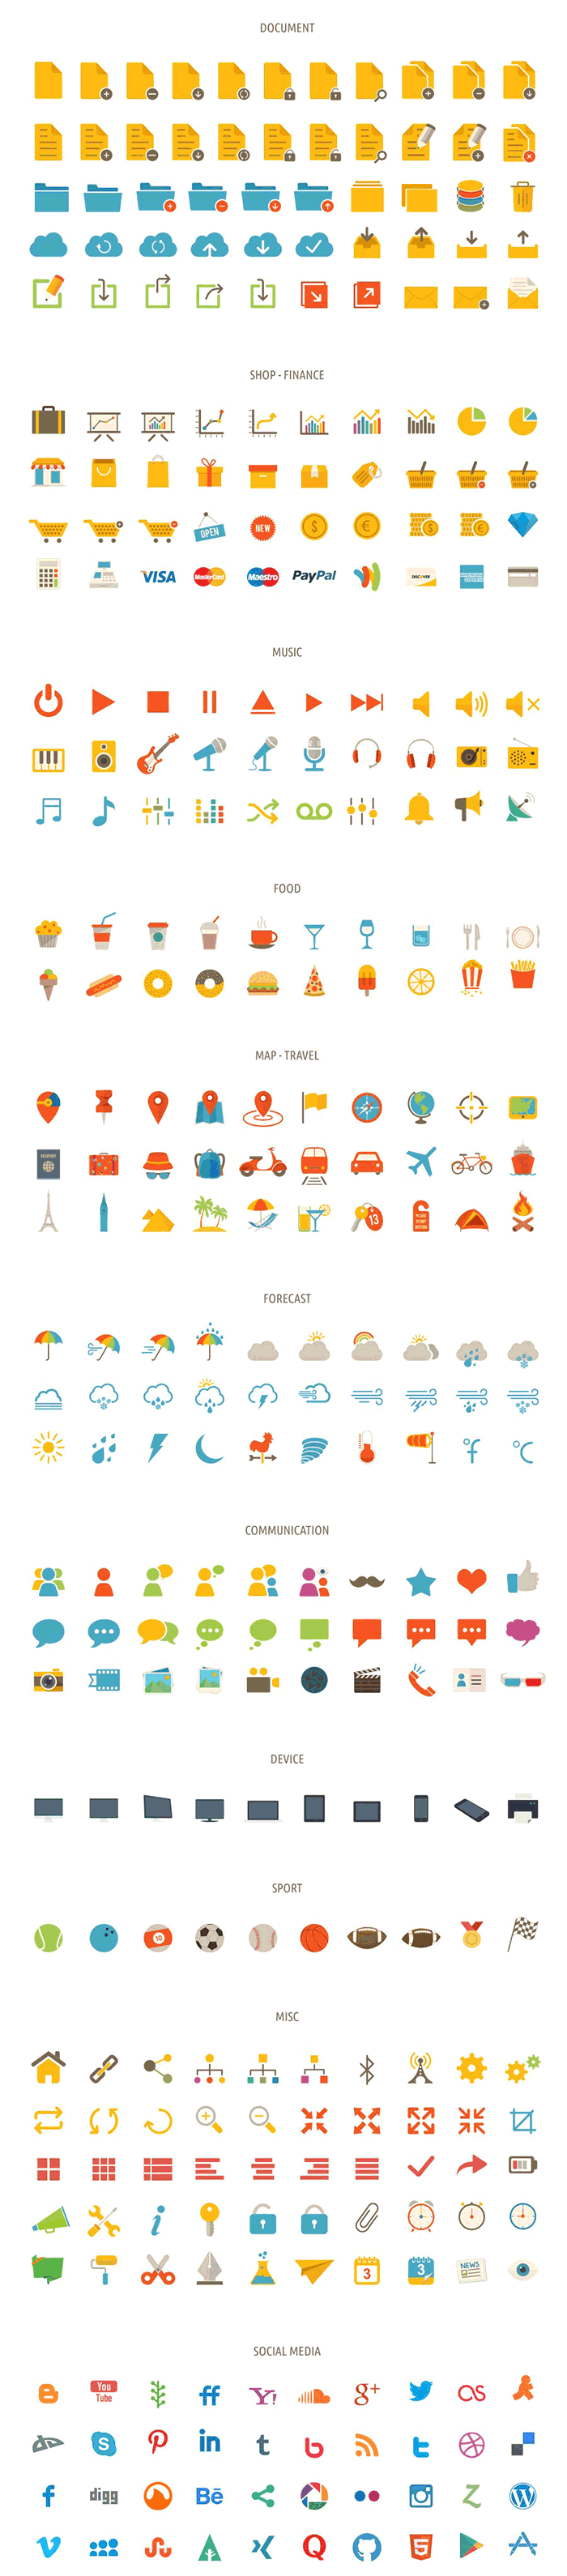 Tonicons-flat-icons